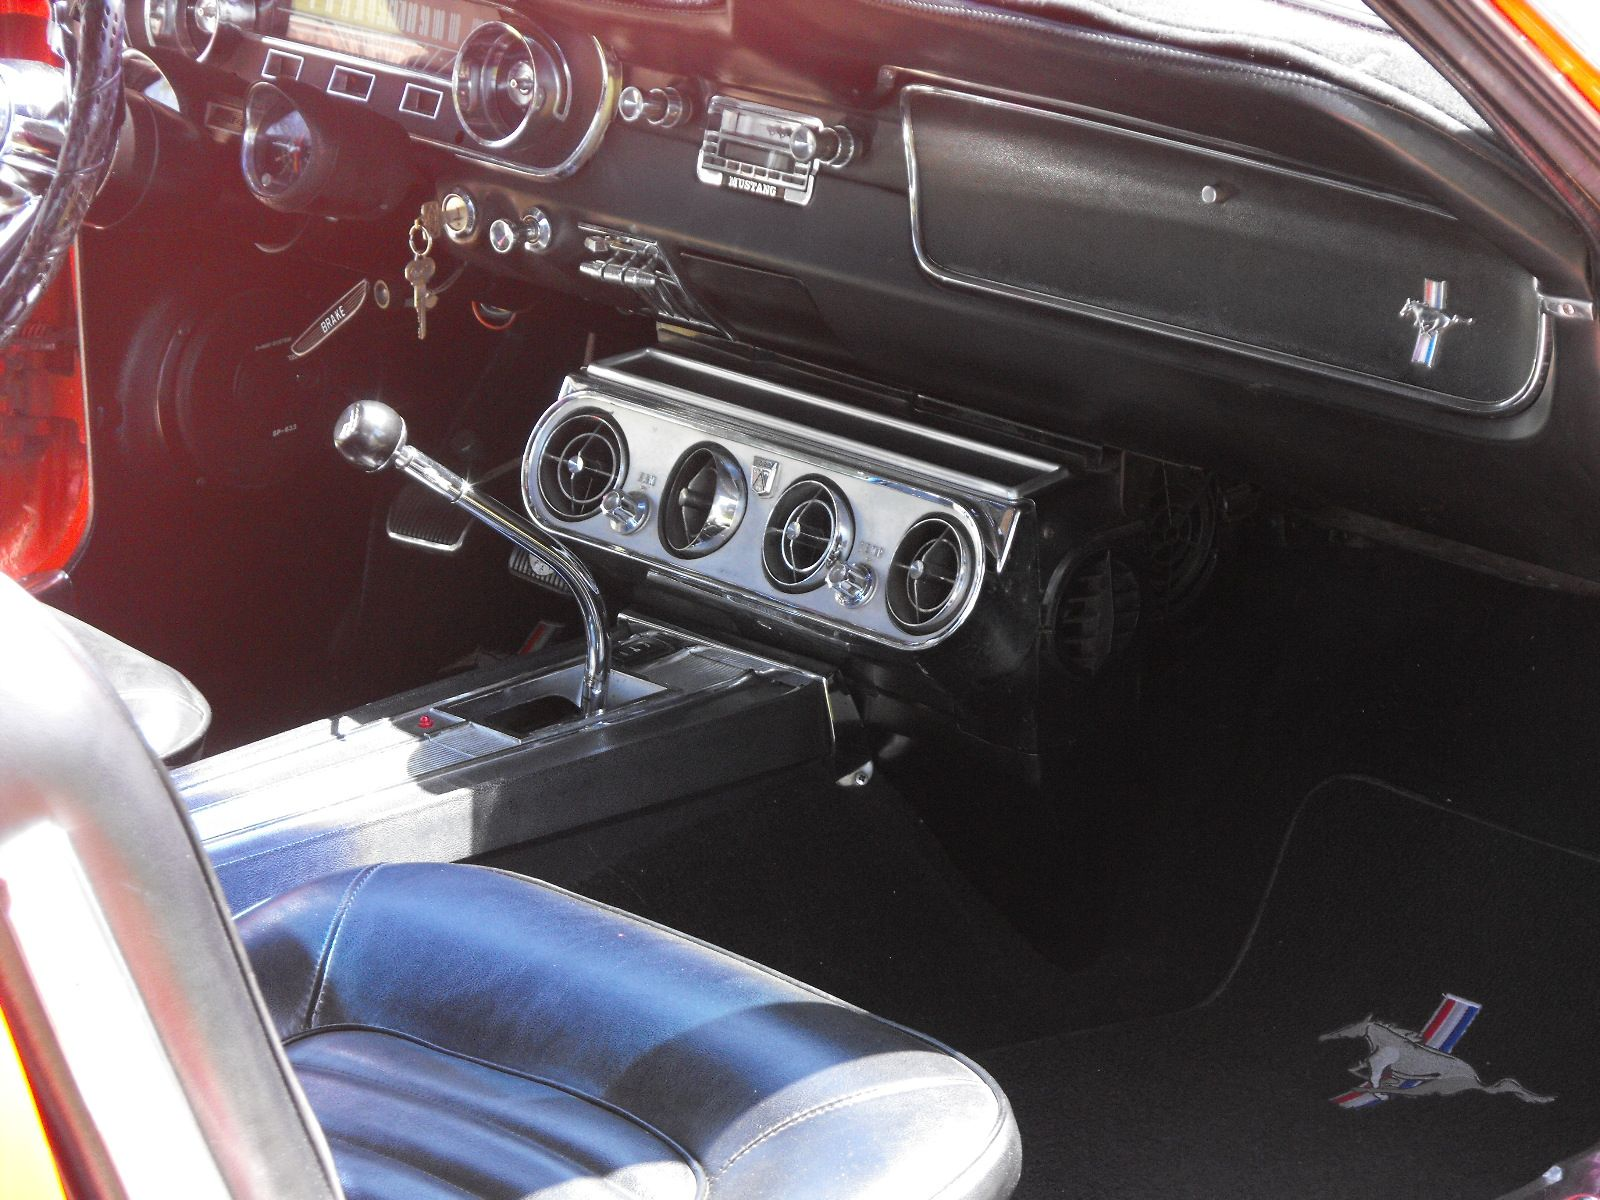 1965 Ford Mustang Interior Pictures Cargurus Mustang Interior Ford Mustang Ford Mustang Interior